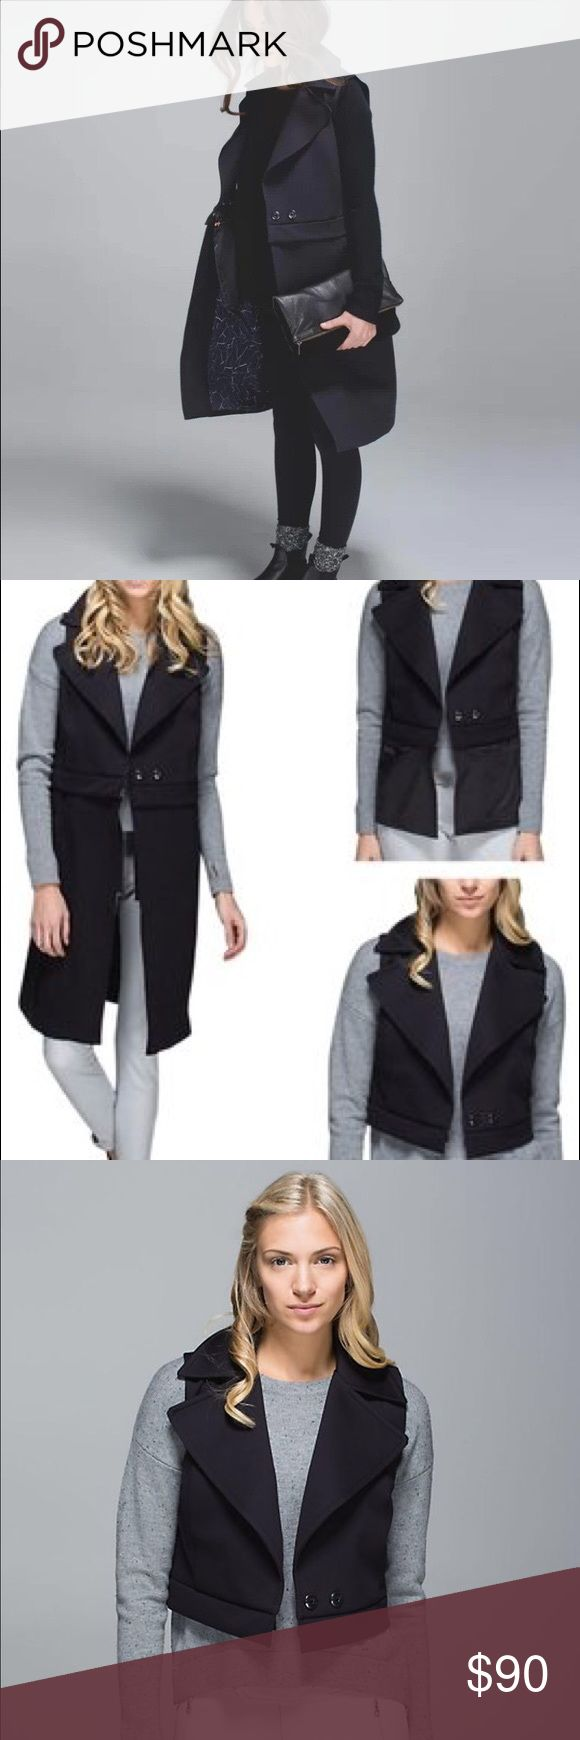 """Lululemon Quick Change Vest """"Whether we're heading to work or out for drinks after, we rely on this lightweight, versatile vest to keep us feeling sharp.  layer under your coat or over your favourite hoodie to keep your core warm sweat-wicking Spacer shell and Swift Ultra Light liner is four-way stretch to move with you en route we've got your storage needs covered there is a pocket for almost everything, even your pen!"""" Three different lengths with easy zipper switching! Only worn a couple…"""